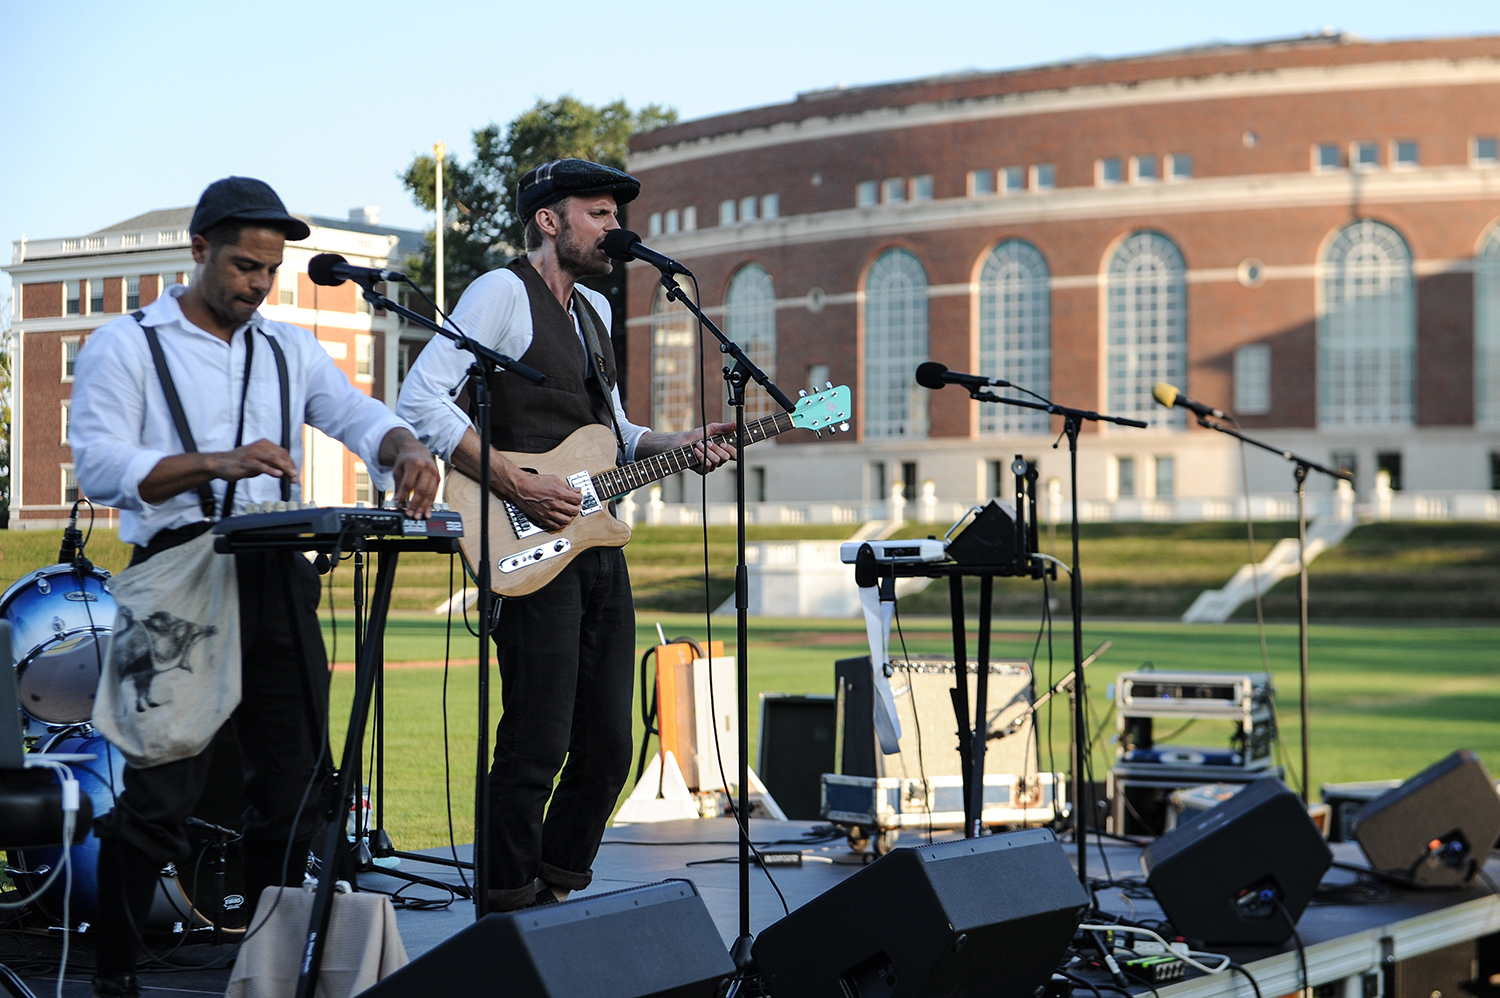 The MASH, Sept. 5, 2014. (Photo by Harry Jiang '18)